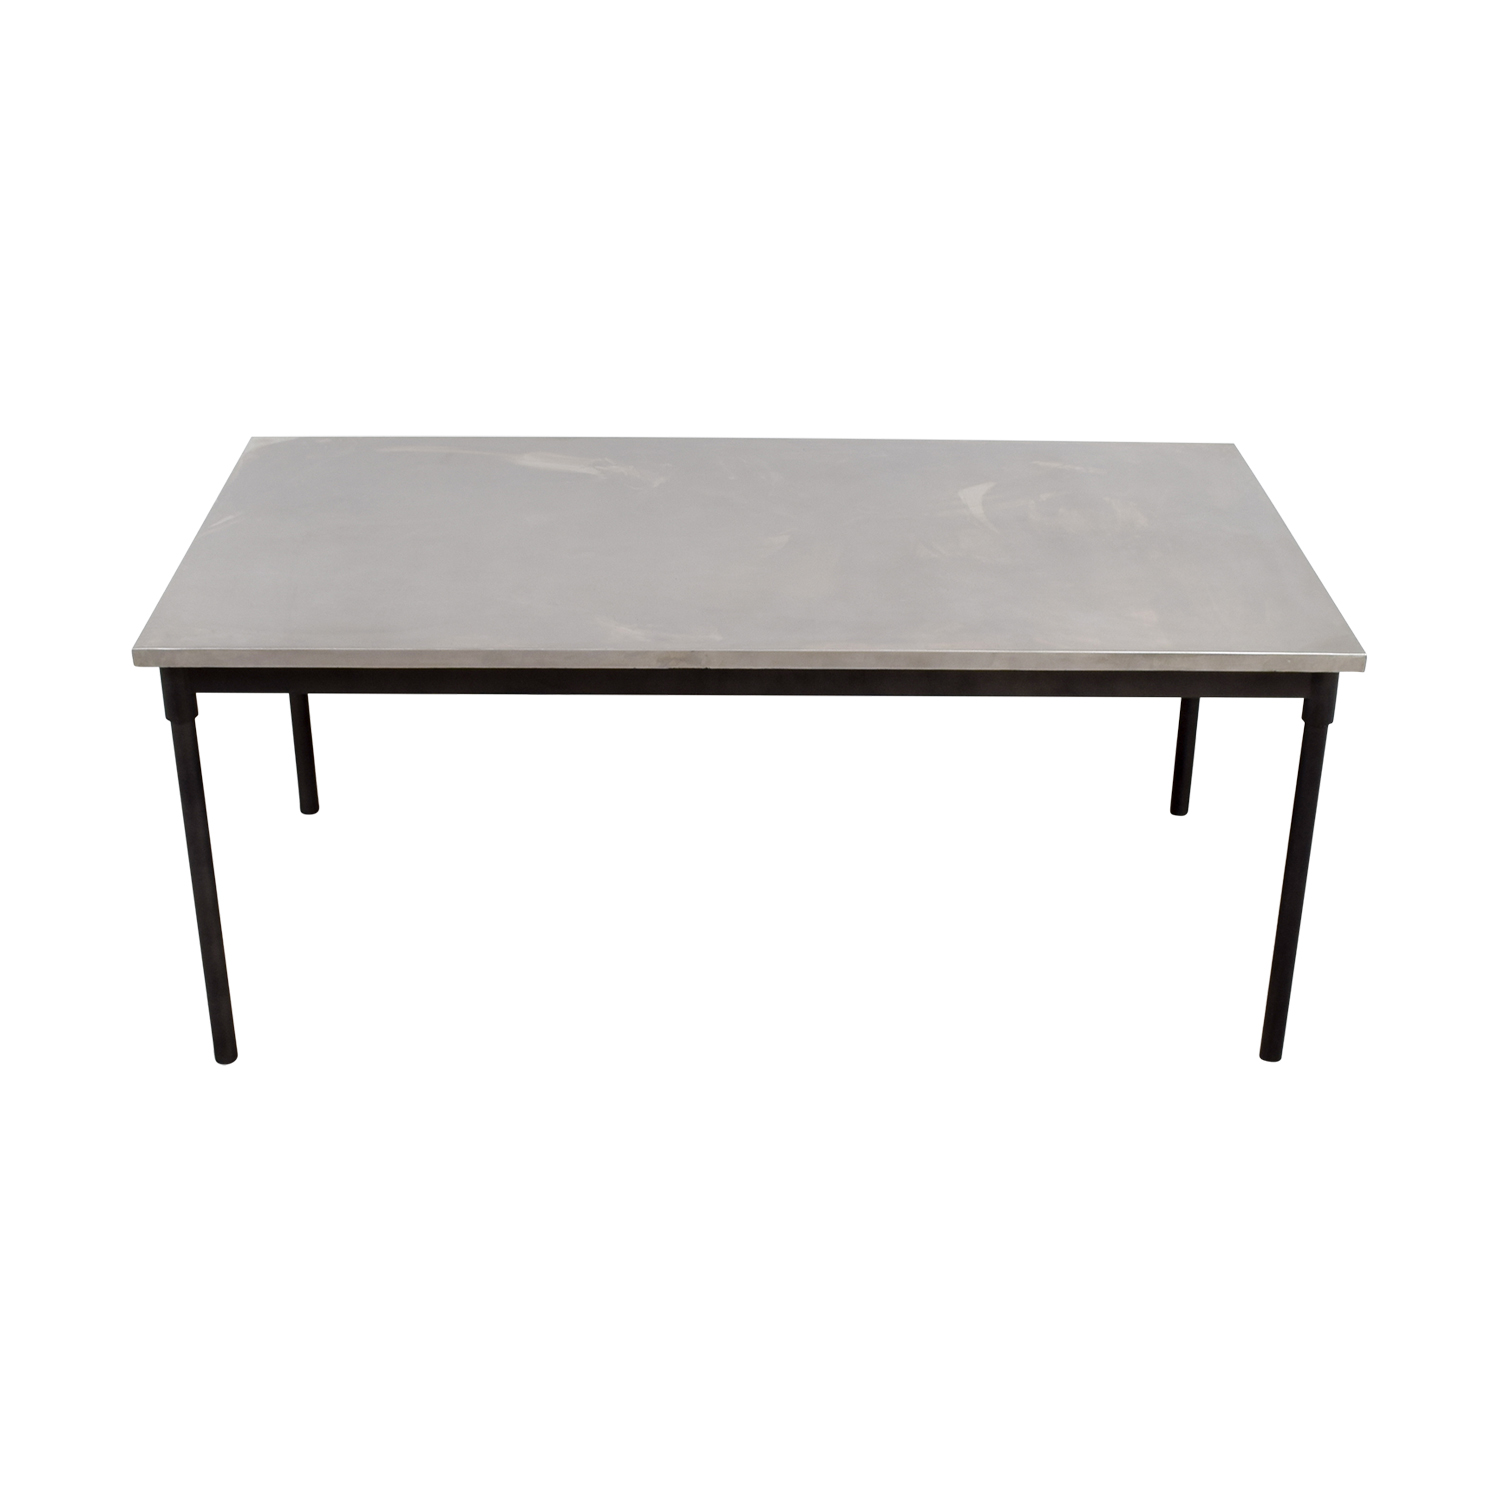 West Elm West Elm Stainless Steel Table Sliver